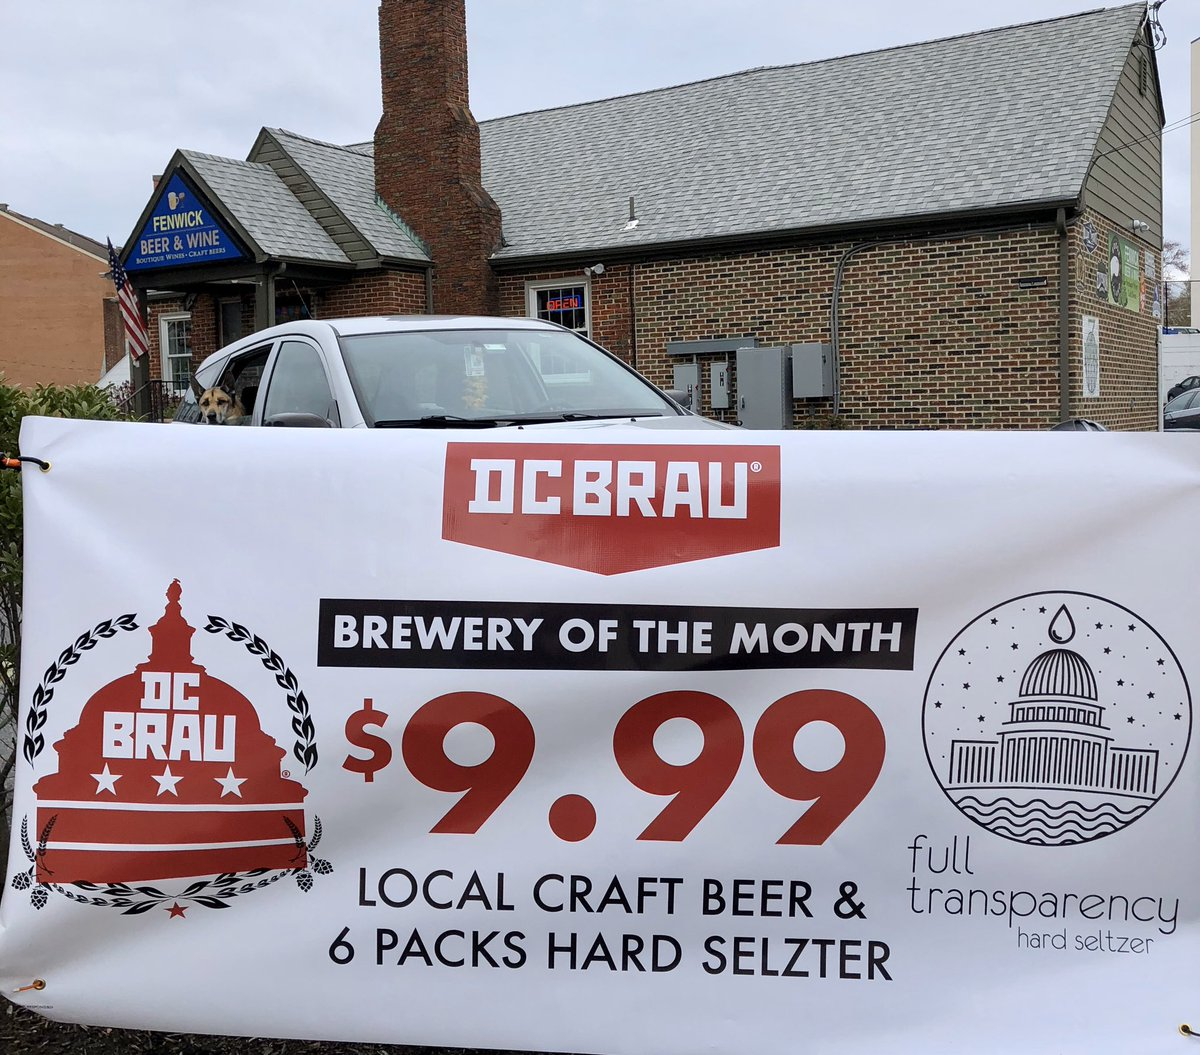 Not a April fool joke @dcbrau beer of the month $9.99/6pk all you want #StayHomeMaryland #StayHome #beer #drinklocal #CraftBeer #SilverSpring #dcbeer #dmv #Bethesda #dcbrews  #DTSS #drinklocal #craftbeerlife #instabeer #craftbeerfan  #microbrew #DrinkCraftBeerpic.twitter.com/OUCpCGrcVW